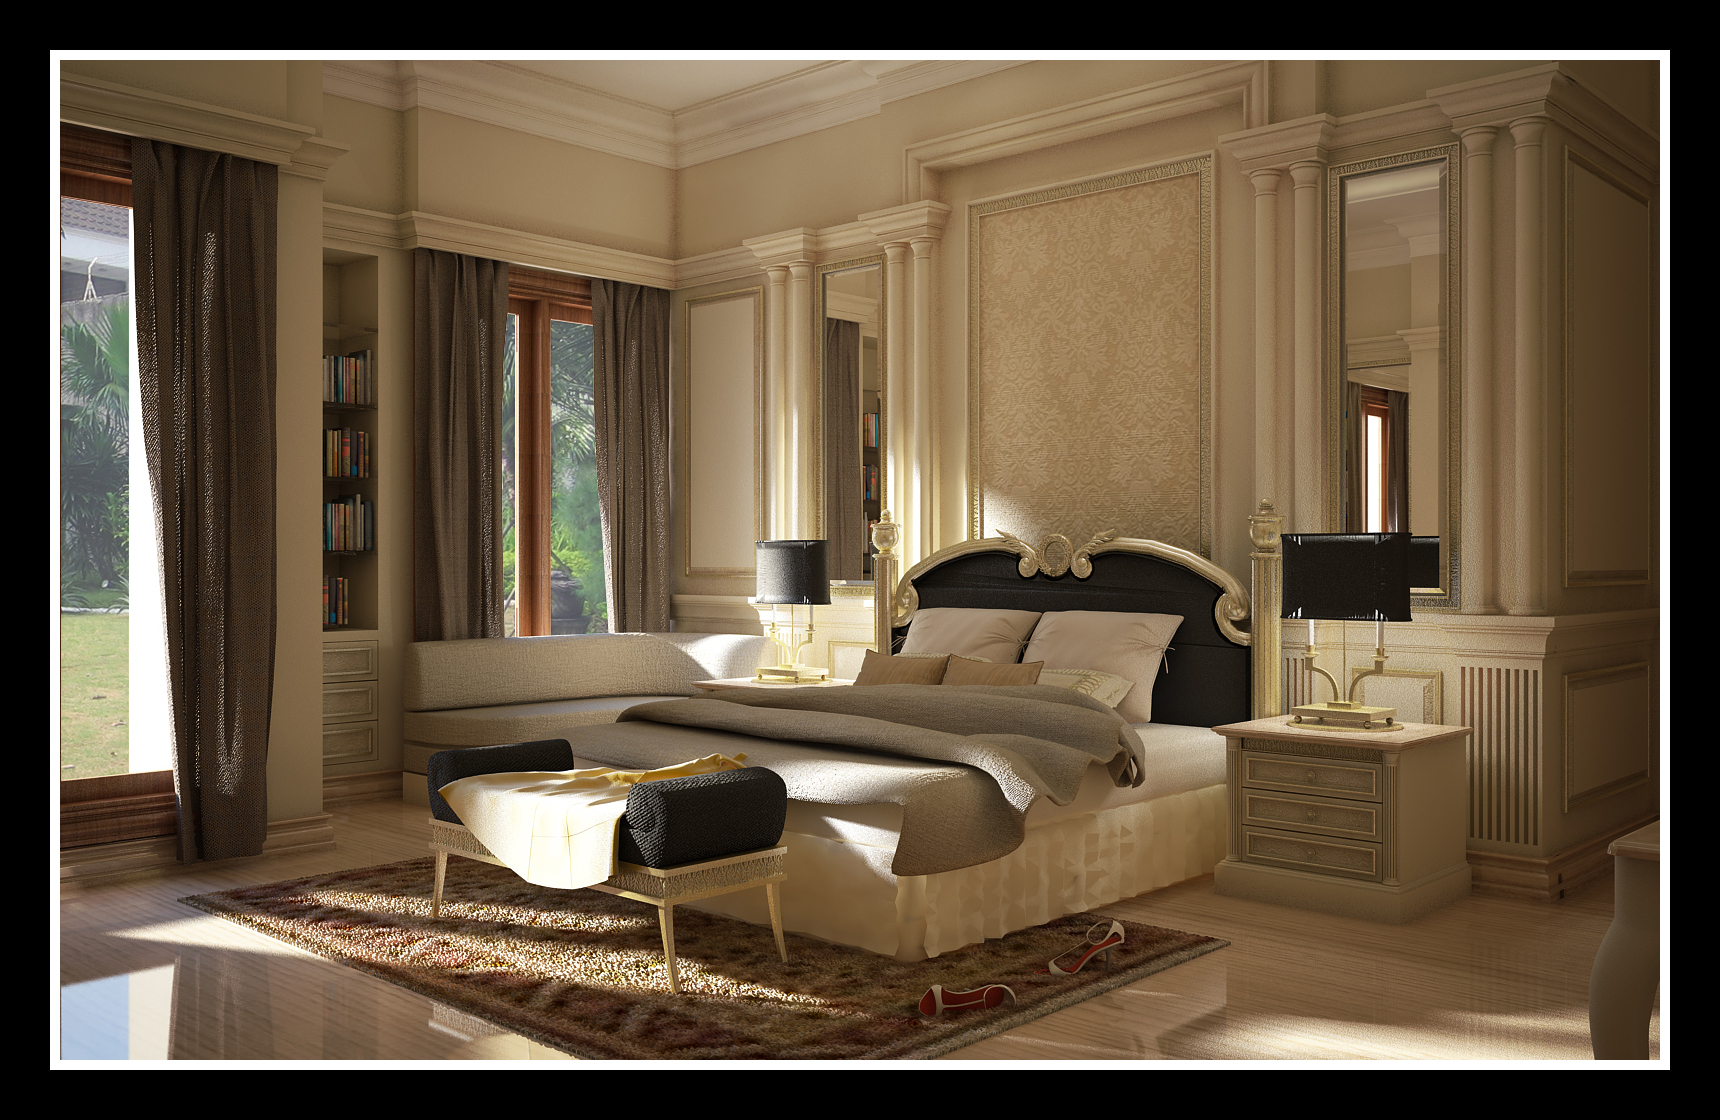 Interior design 3d home designer for Interior decoration for bedroom pictures